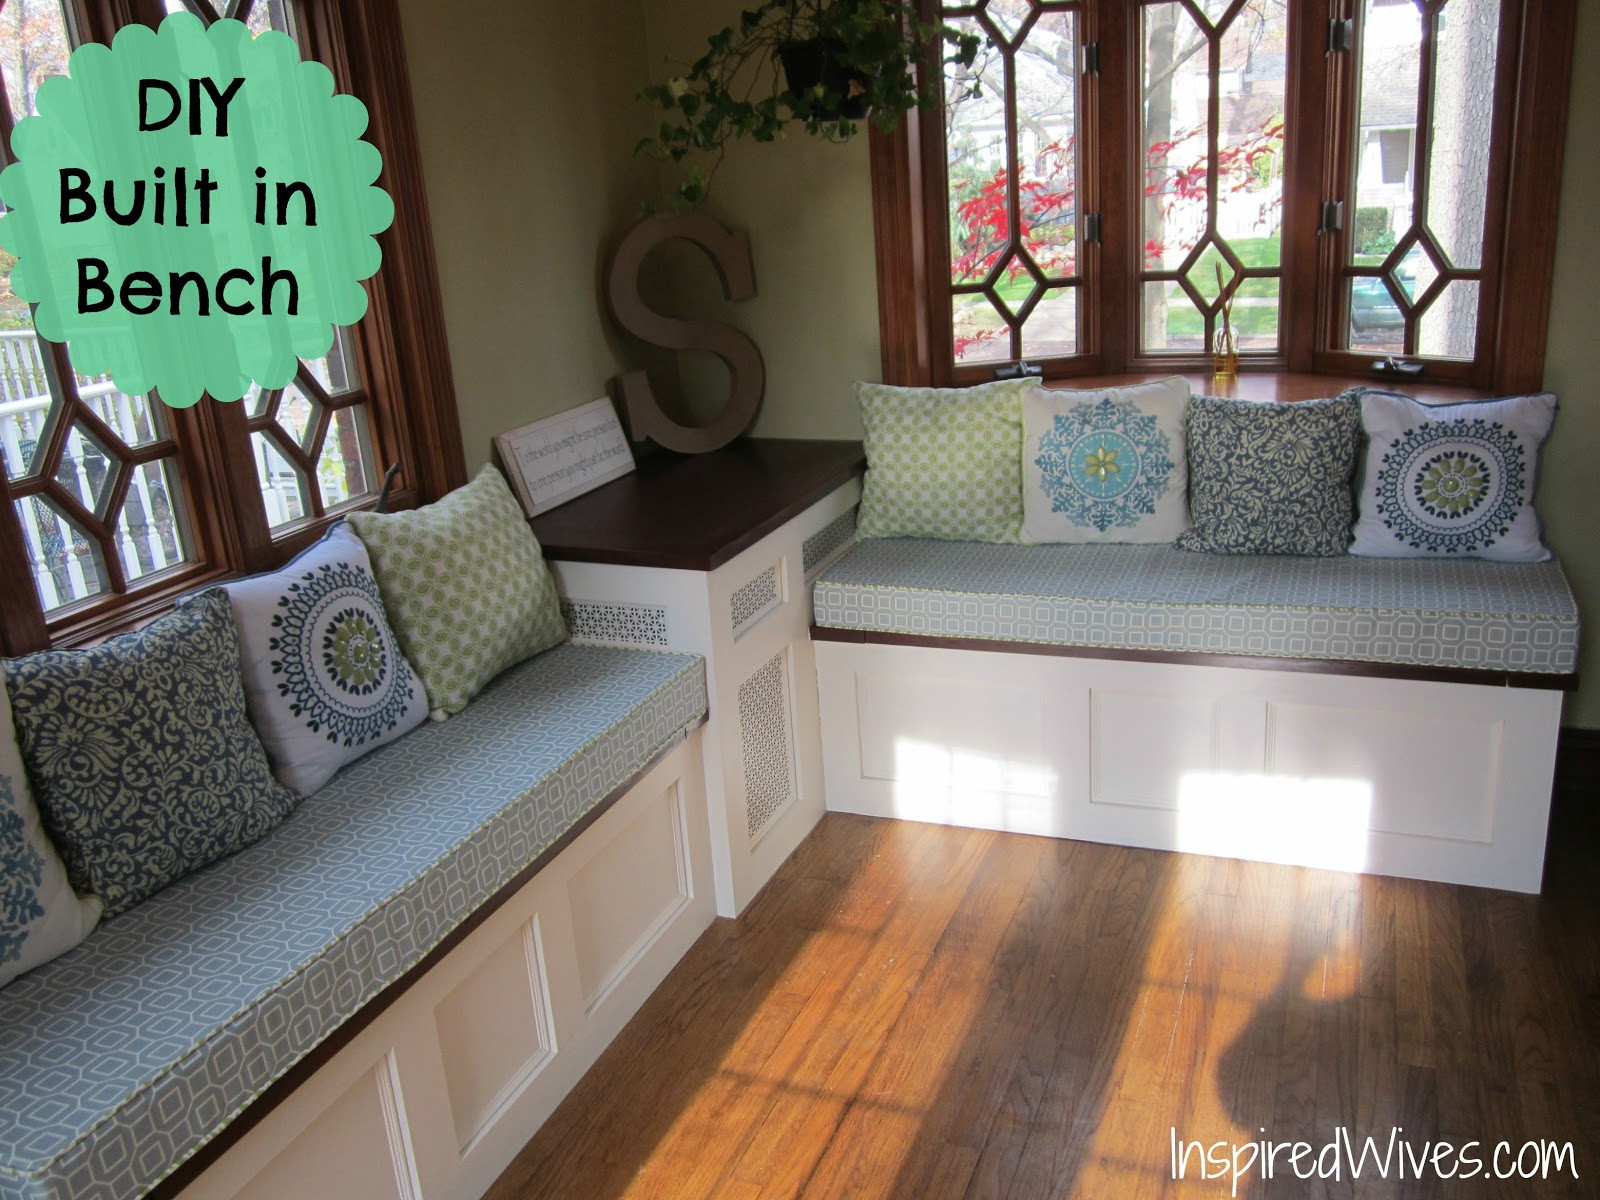 Best ideas about DIY Built In Bench . Save or Pin Built In Kitchen Bench Plans PDF Woodworking Now.